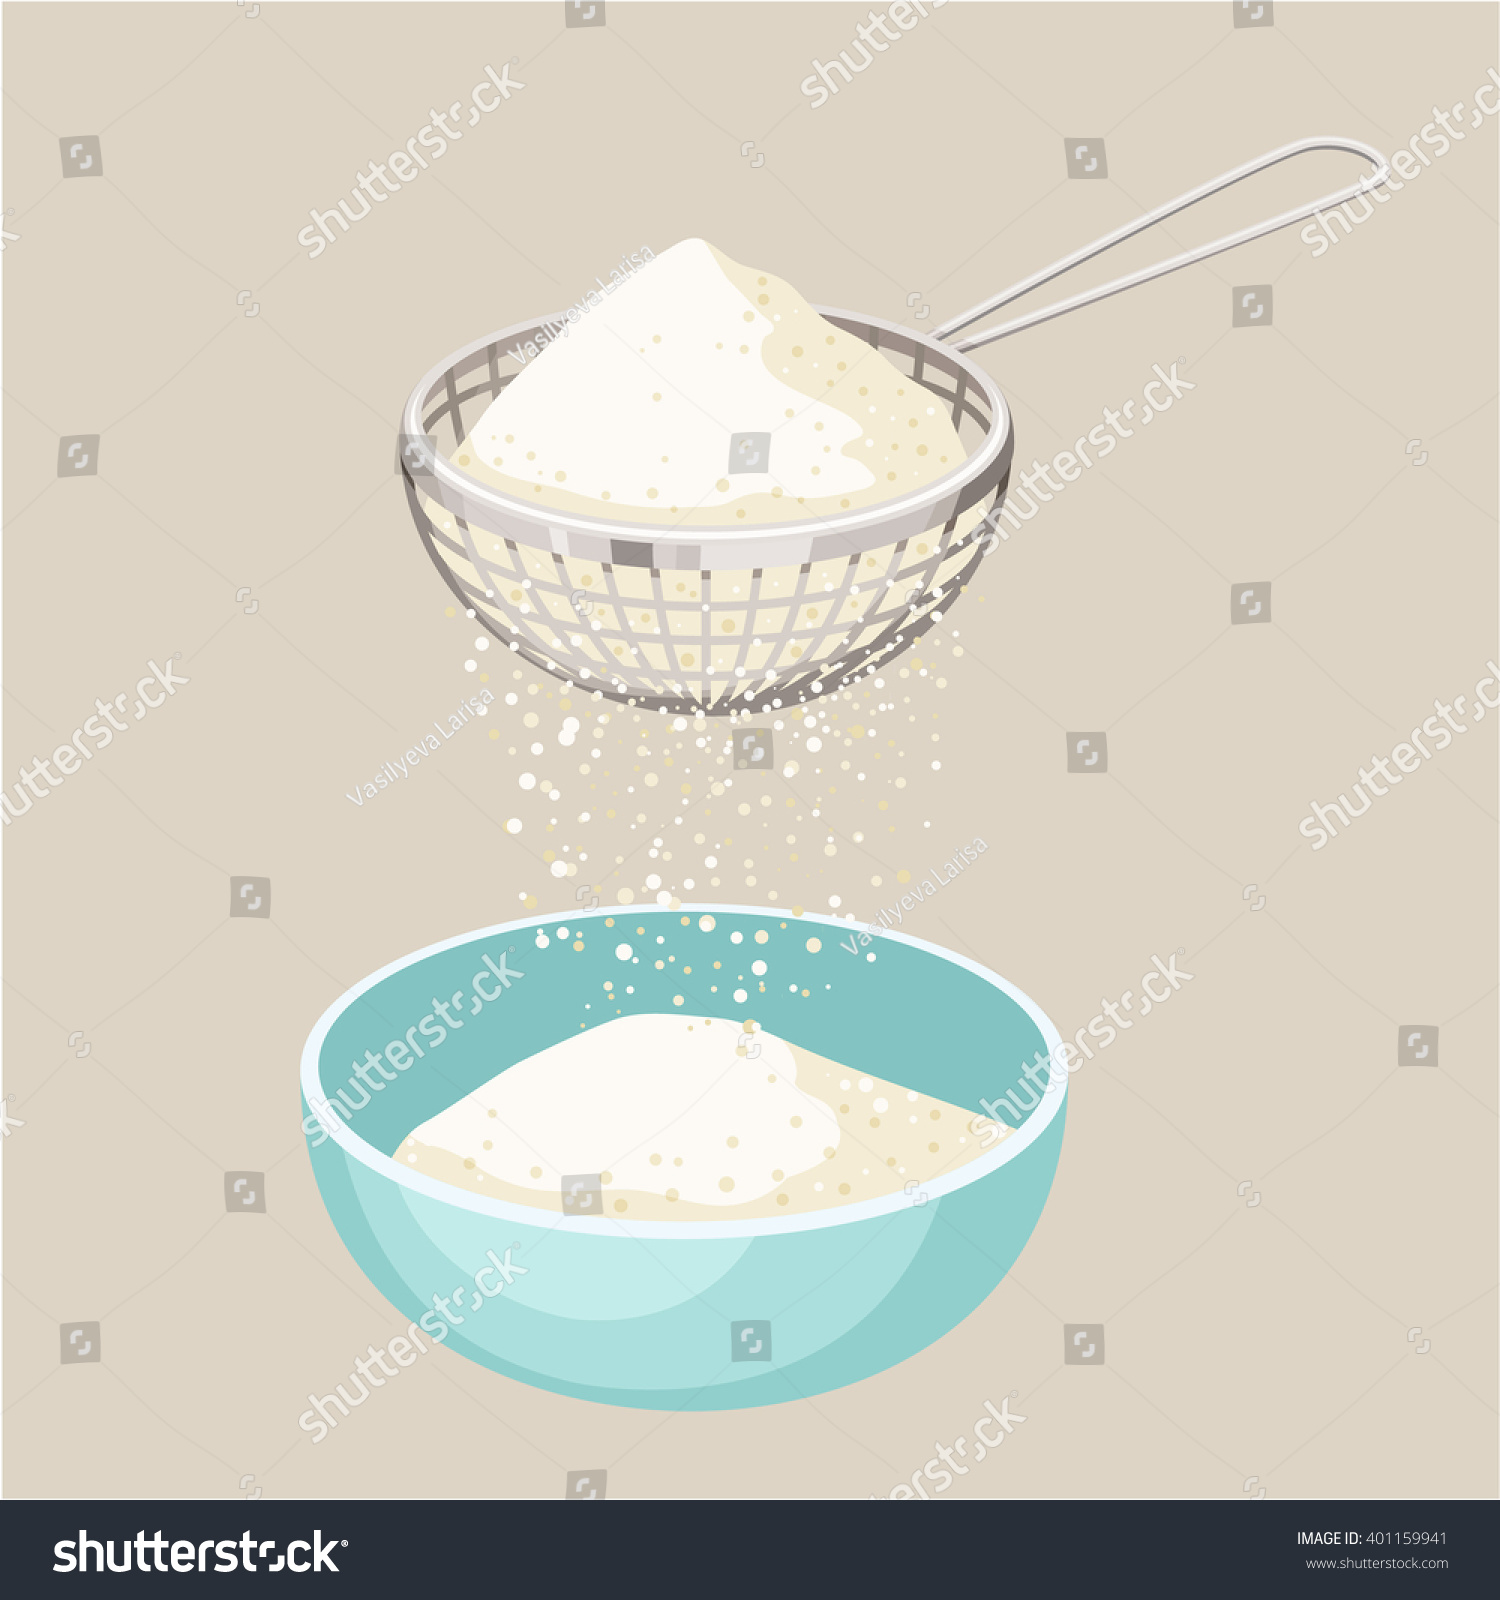 flour sifter sieve on cup baking stock vector 401159941 - shutterstock